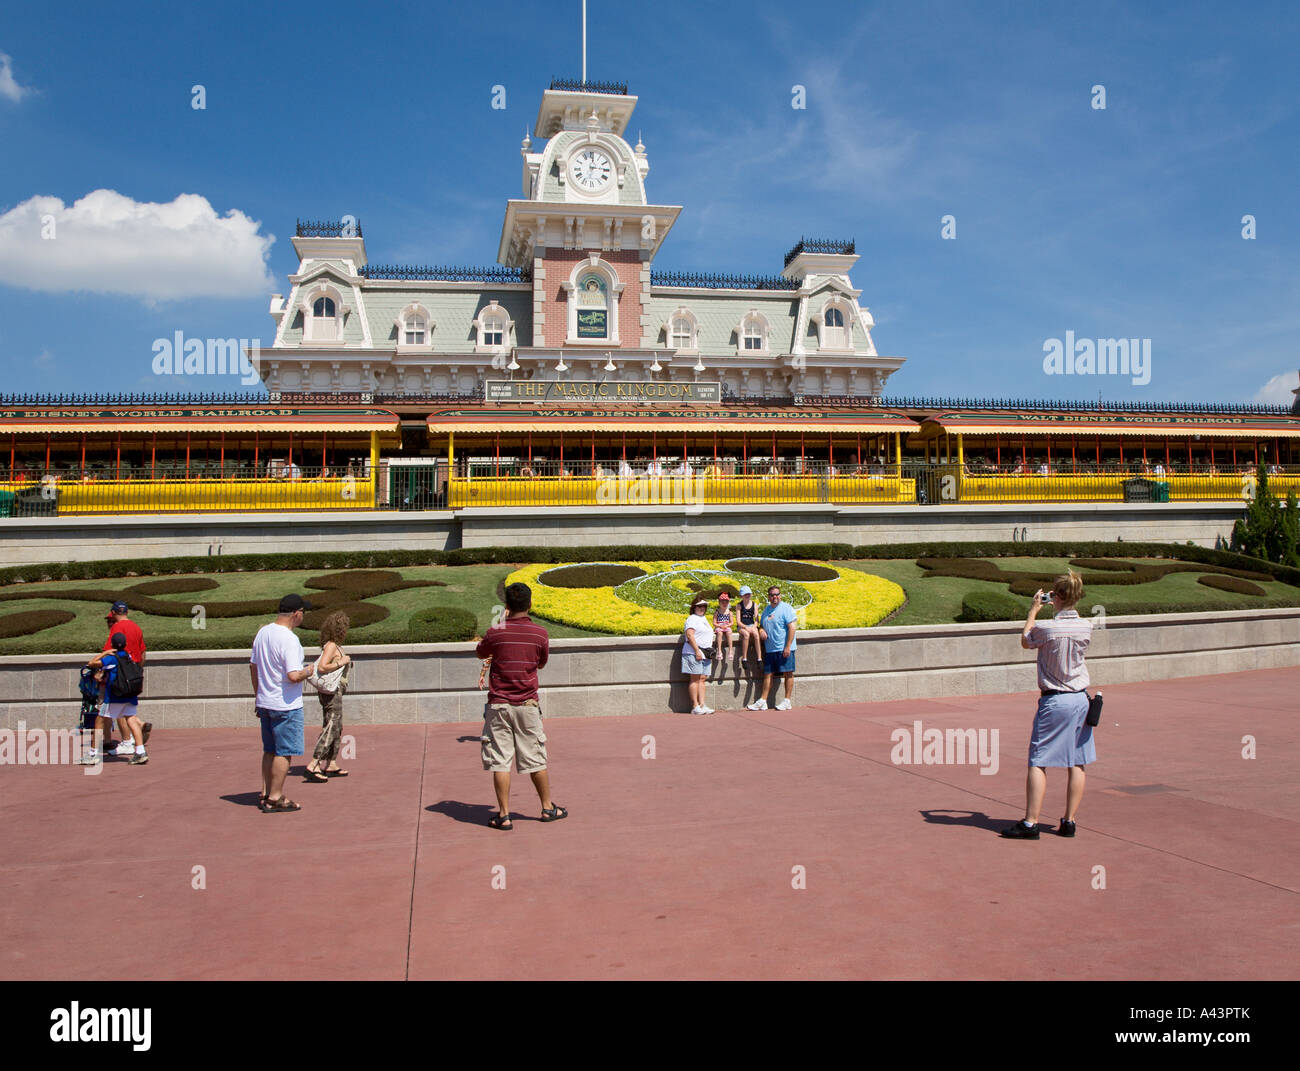 Park guests taking pictures outside entrance to the Magic Kingdom at Walt Disney World, Florida, USA - Stock Image